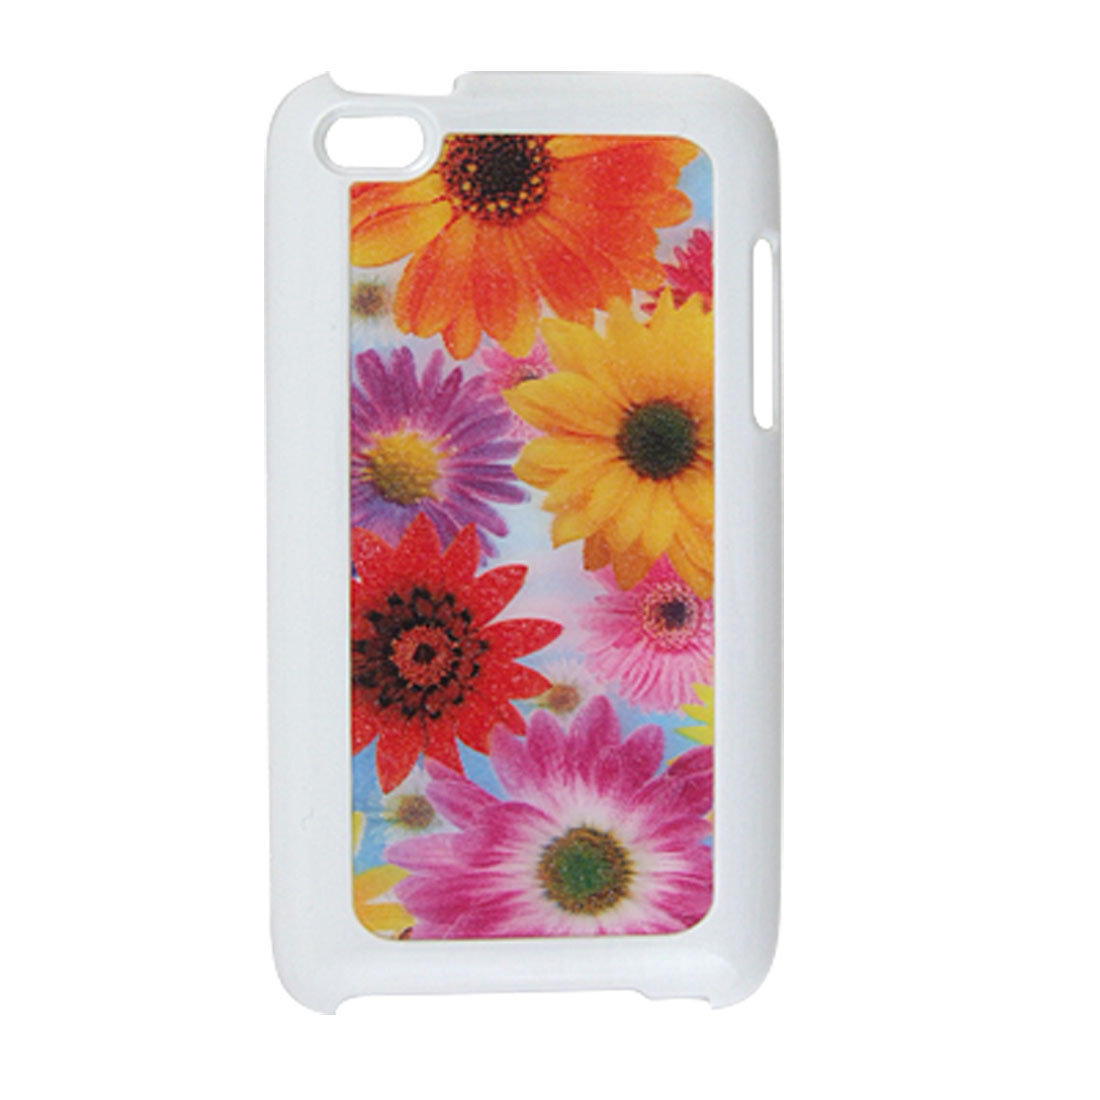 3D Sunflower Multicolor Hard Plastic Back Case for iPod Touch 4G